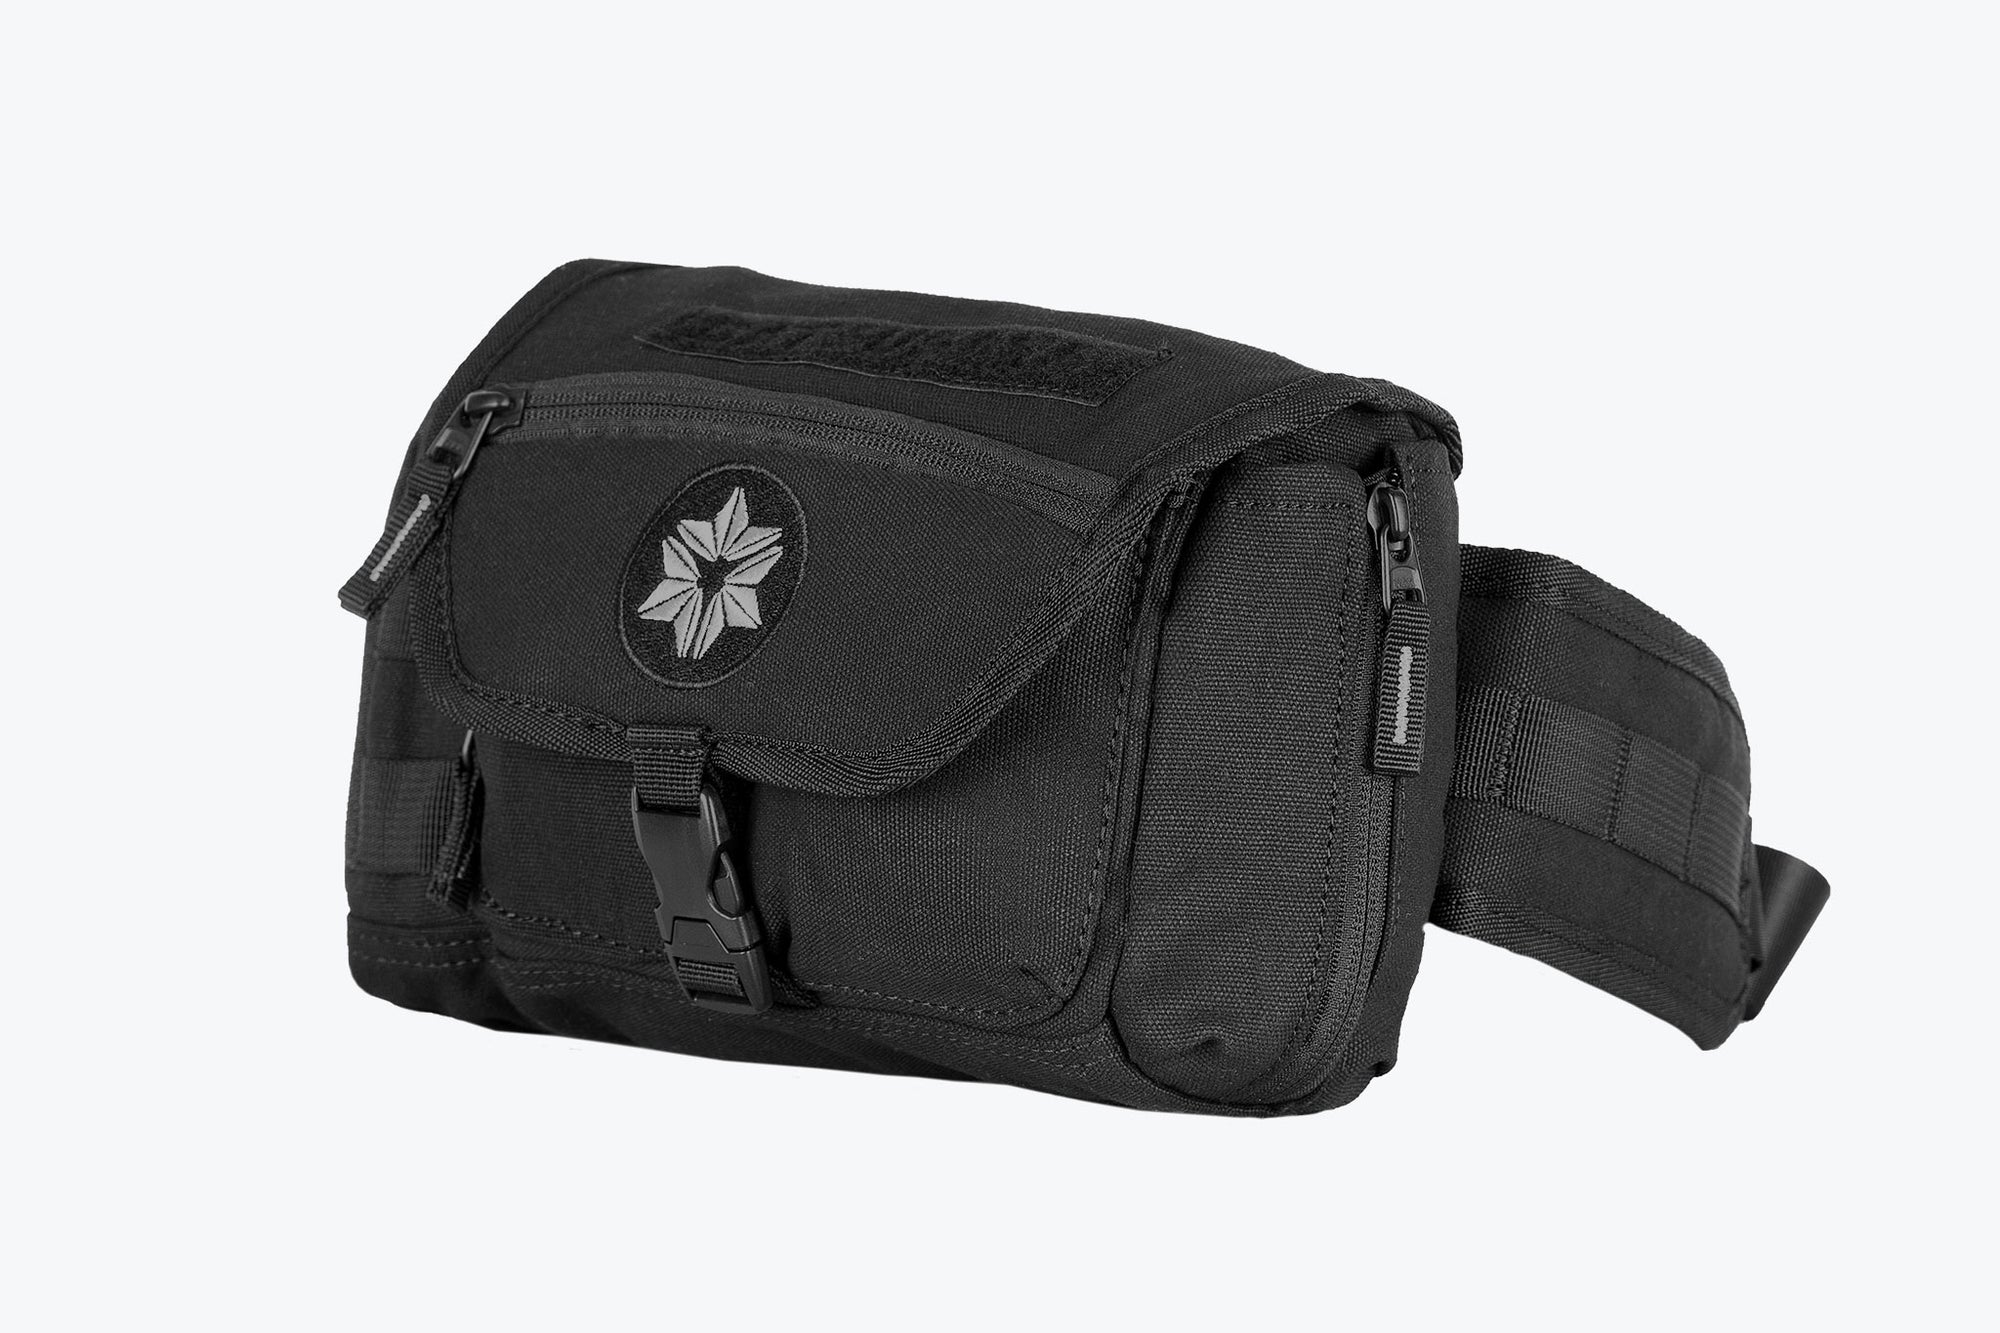 Joe Rogan Fanny Pack and Utility Belt